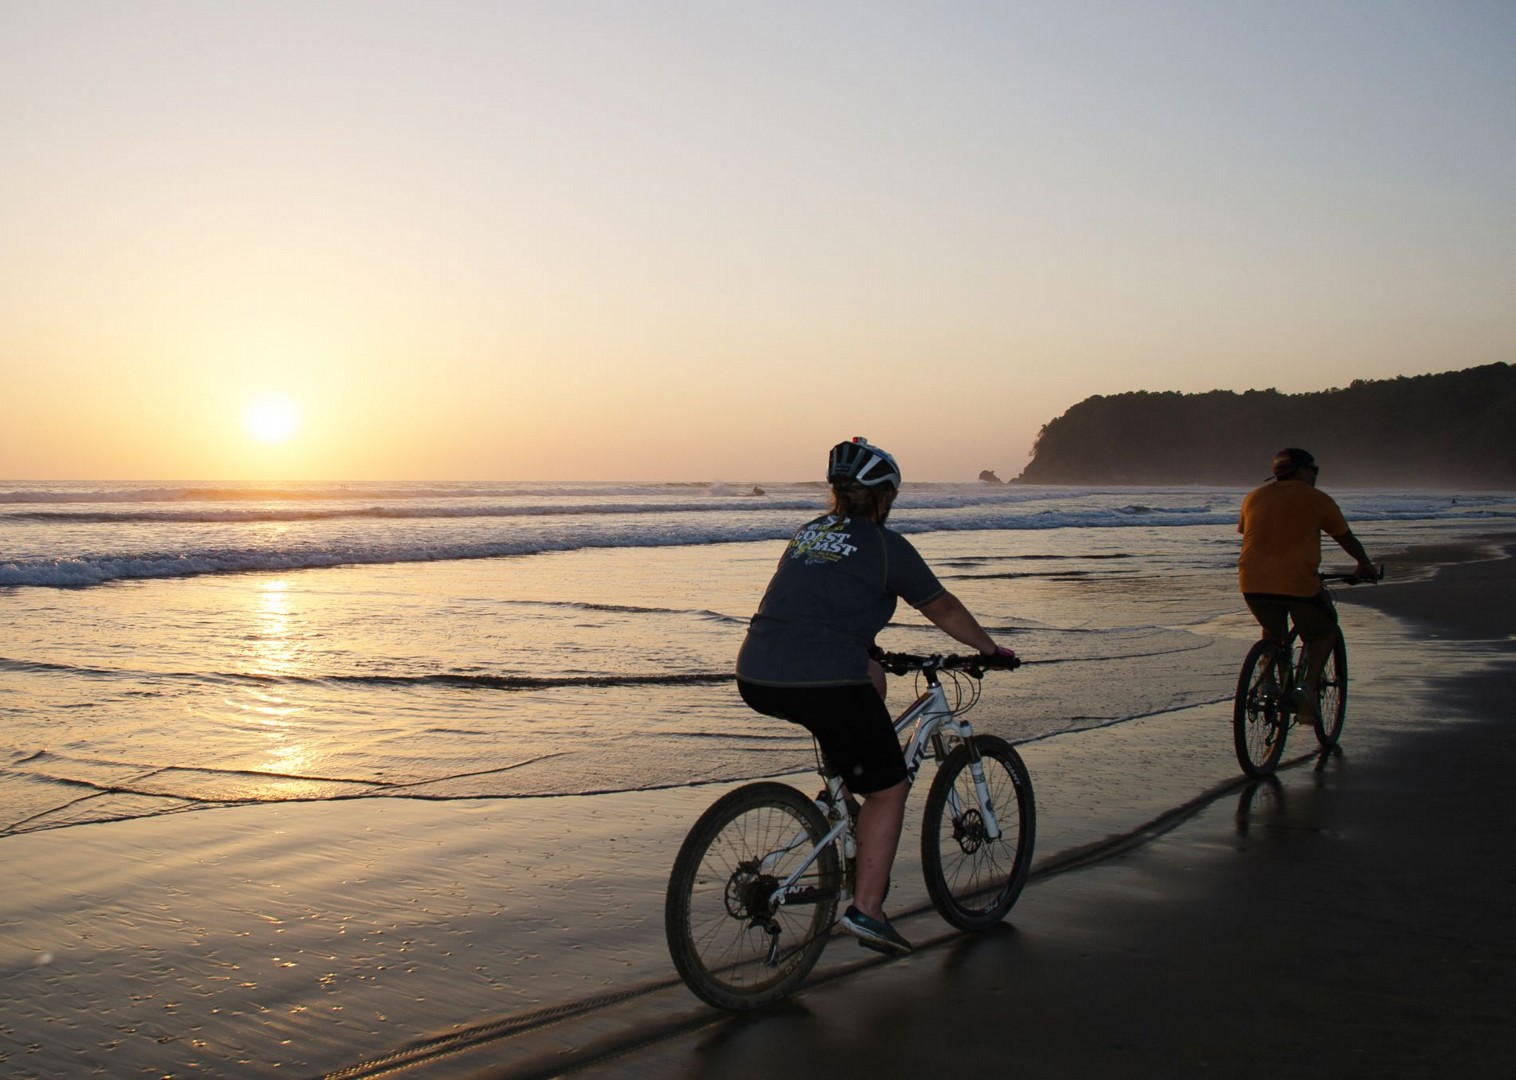 sunset-beach-costa-rica-guided-cycling-holiday.jpg - Costa Rica - Volcanoes and Valleys - Family Cycling